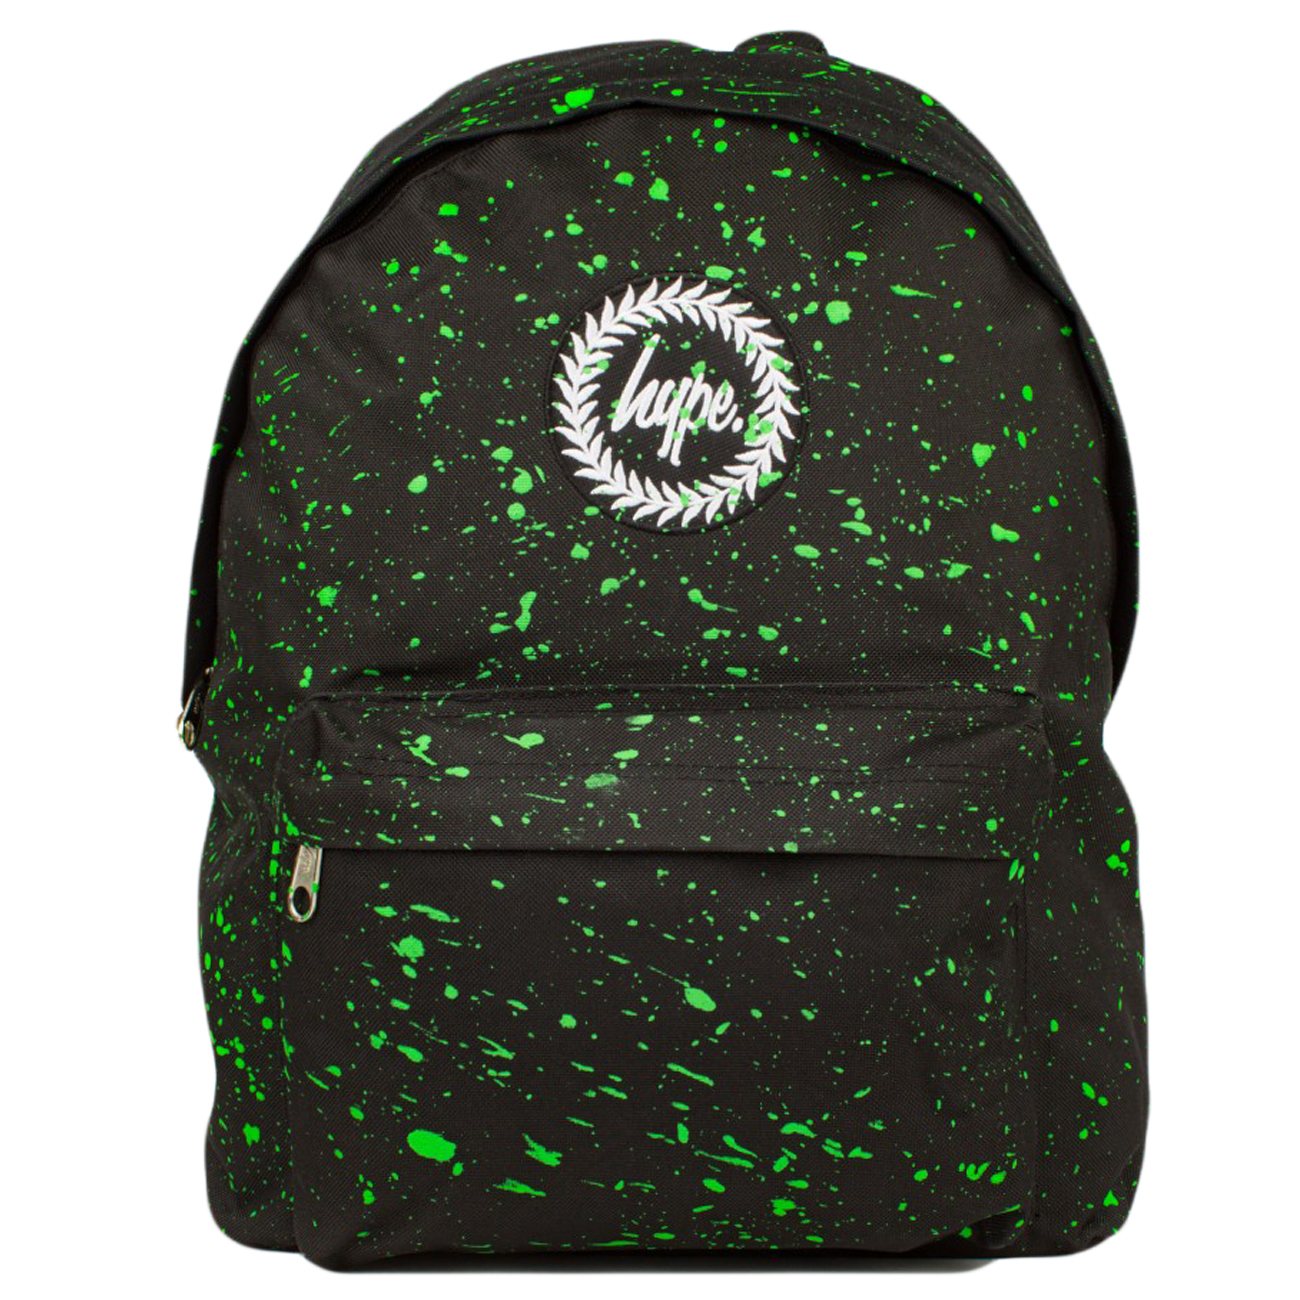 Sentinel Just Hype Backpack Bag Black and Green Speckled 96c28bcd2ca28